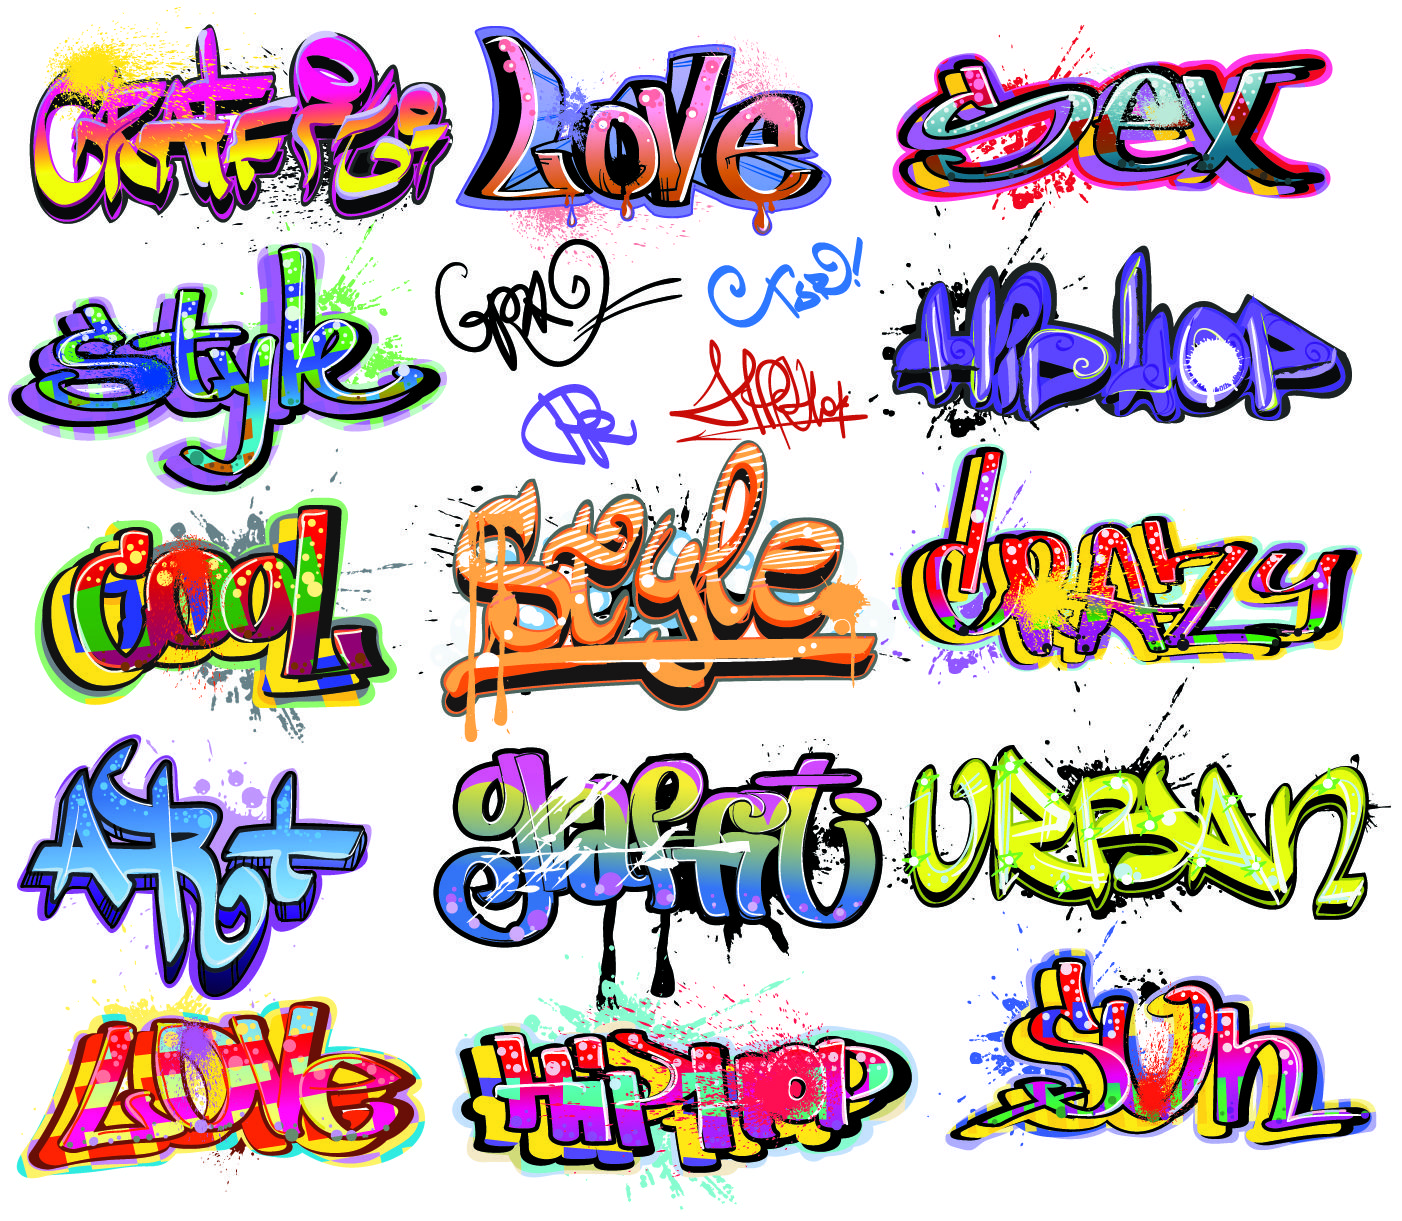 Free illustration g typography font font name free image on - Free Vector Beautiful Graffiti Font Design 01 Vector